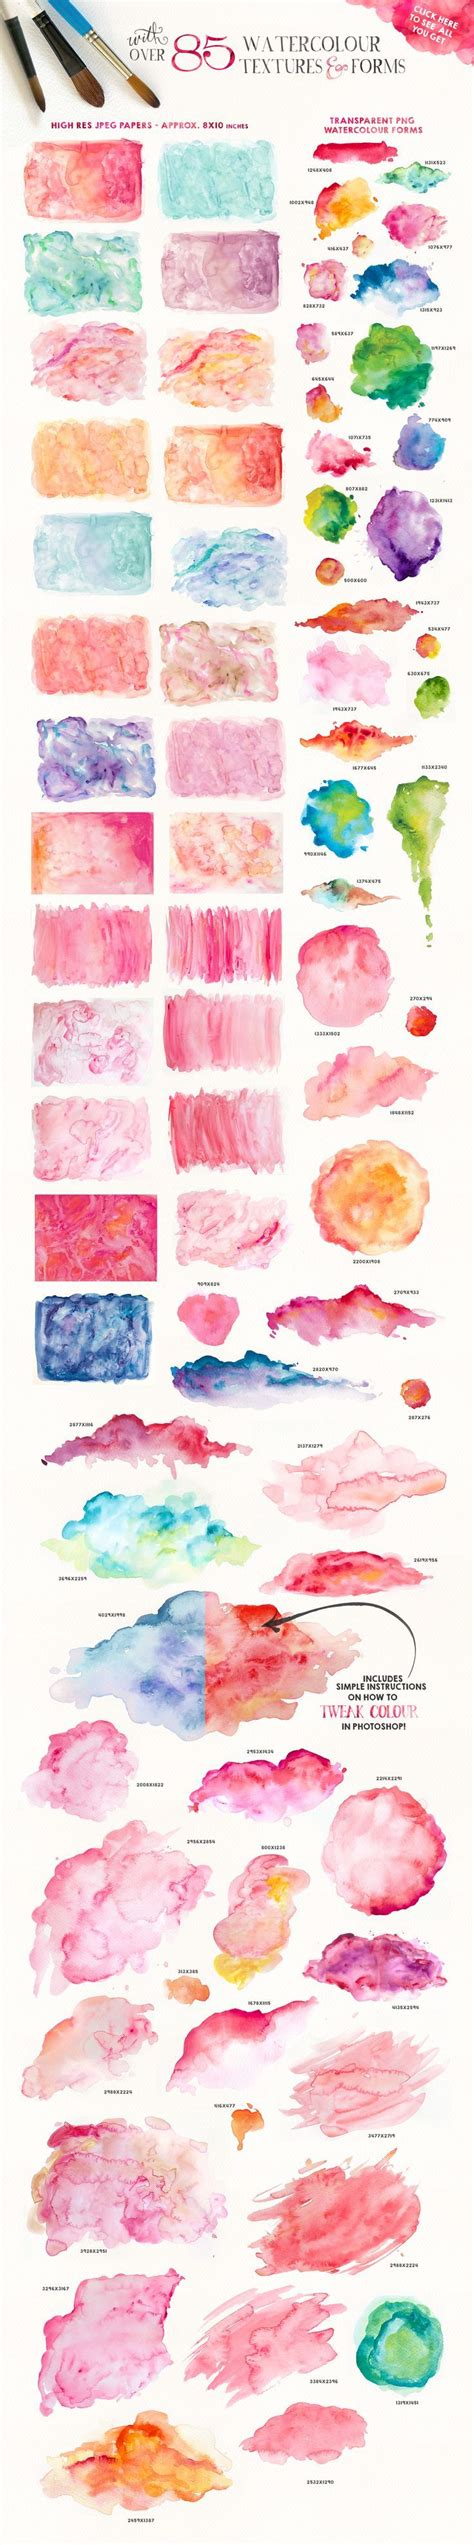 watercolor pattern tutorial 47 best watercolor painting images on pinterest water